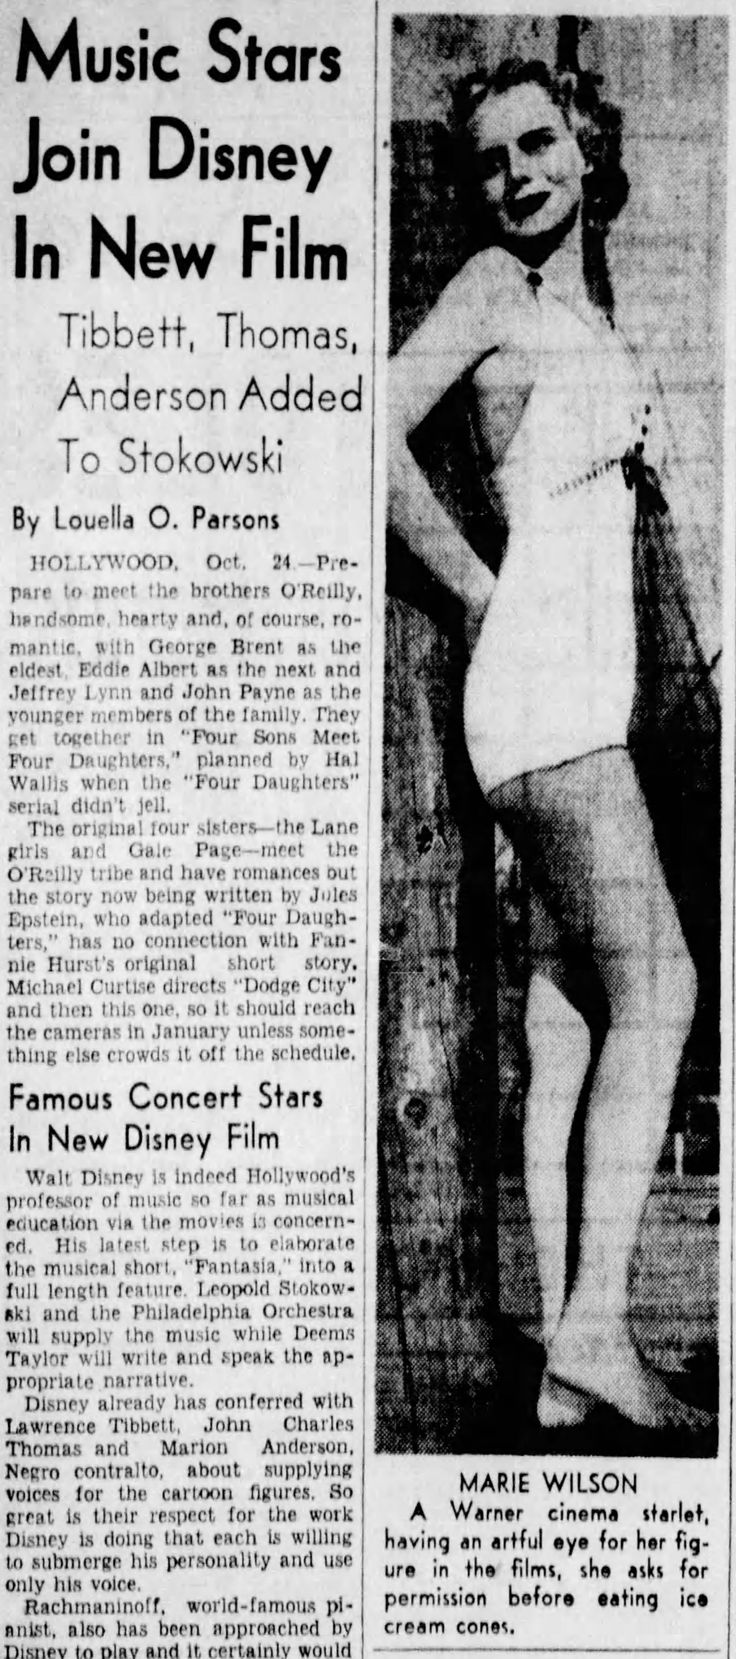 Oct 25, 1938, Hollywood, California.  Marie Wilson, a Warner Bros. colleague of Patricia Ellis, looking peculiarly thin.  For years self-starvation by young screen starlets due to studio pressure was kept a dark secret in the movie industry.  Most young actresses followed some sort of diet to maintain their girlish figures; some unfortunately went to extremes.  Smoking also helped keep one's mind off food. (The Philadelphia Inquirer,  Oct 25, 1938, p.20).